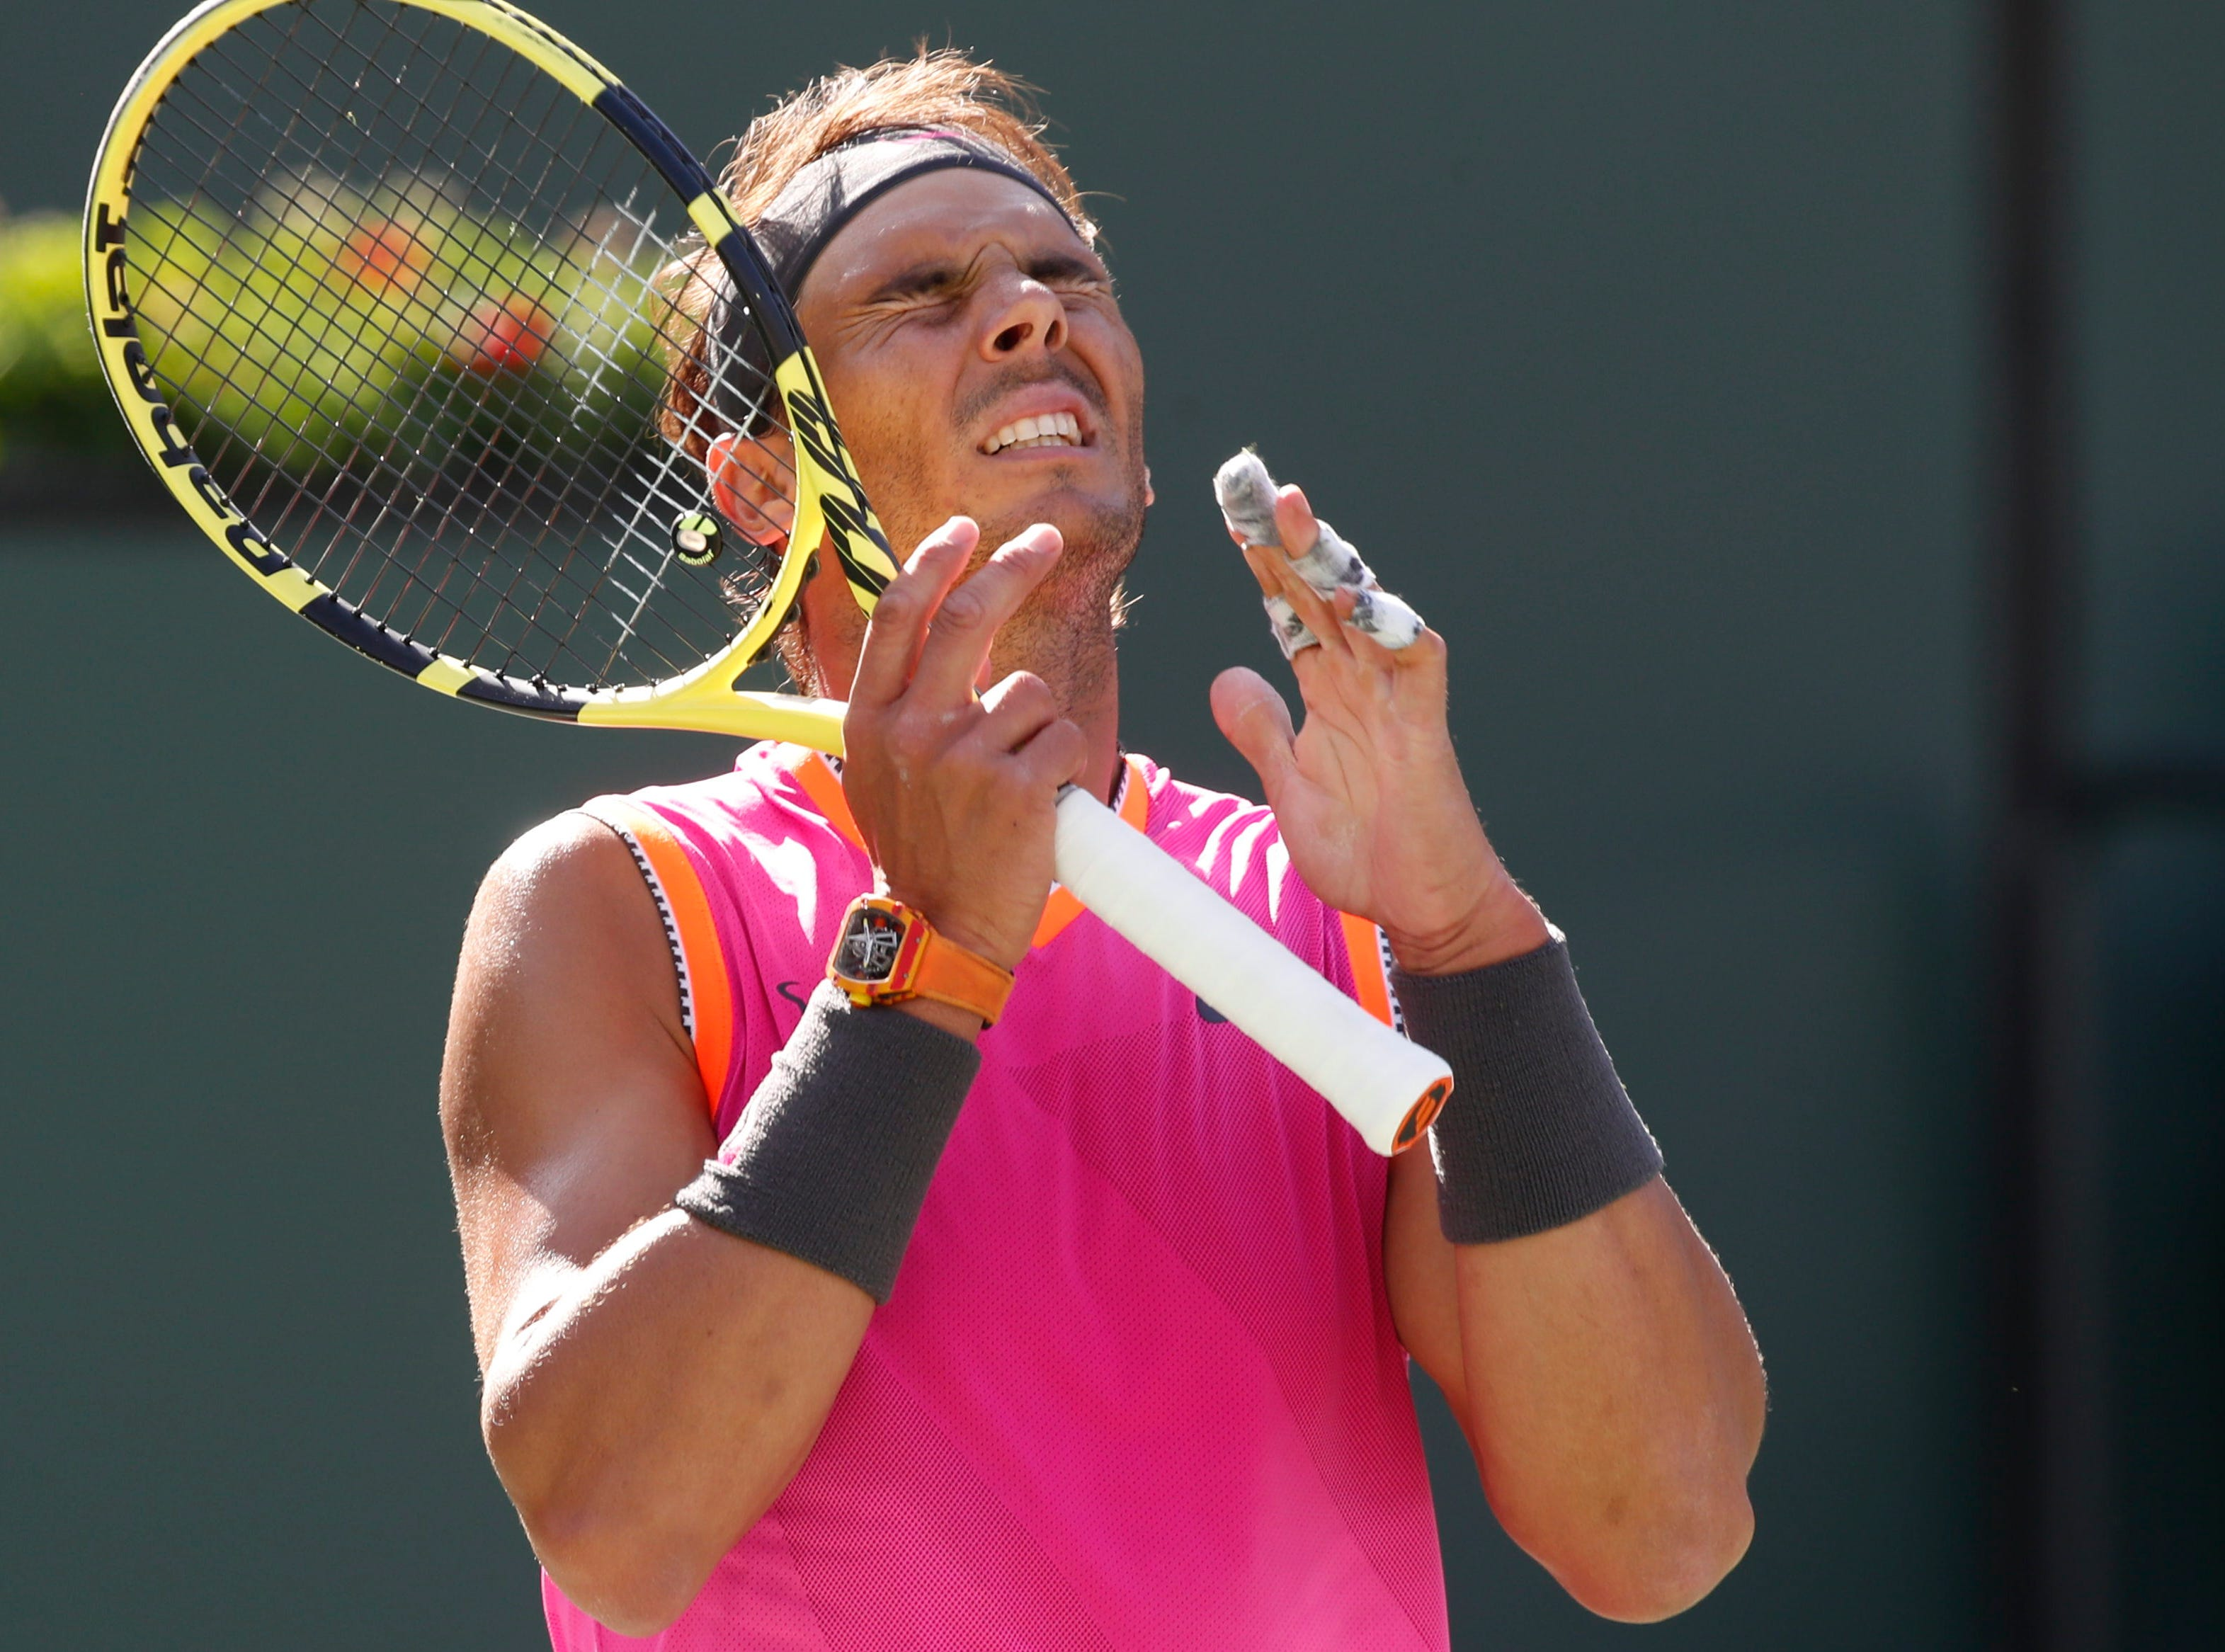 Rafael Nadal laments a play against Karen Khachanov on Stadium One at the 2019 BNP Paribas Open at Indian Wells Tennis Garden on March 15, 2019. Nadal won the quarterfinal match.